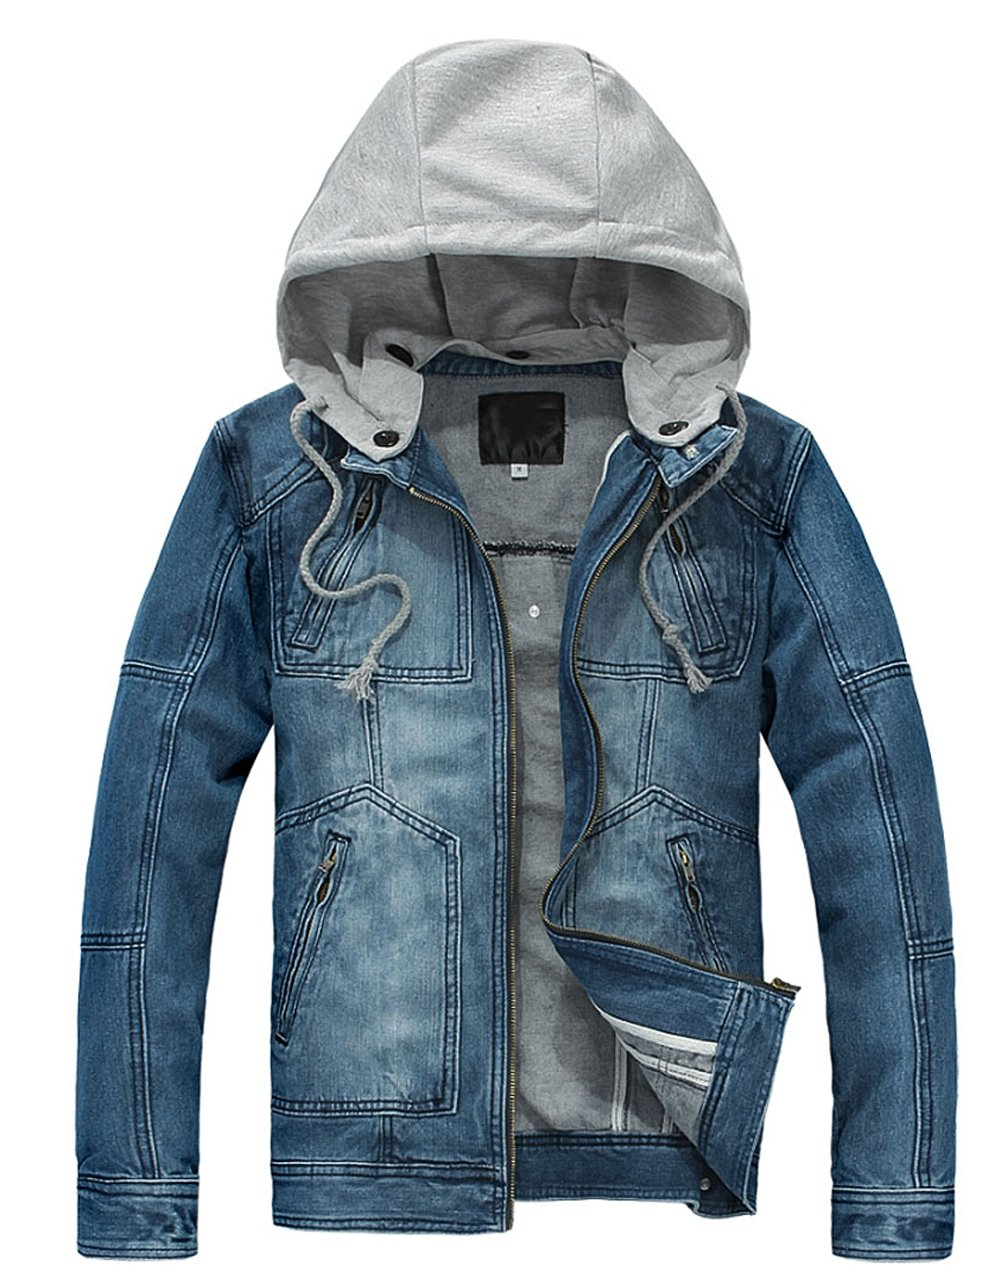 Wantdo Men's Fashion Faux Jackets Pu Leather Jackets With Removable Hood With Gift Mens Fashion Long Sleeve Zip